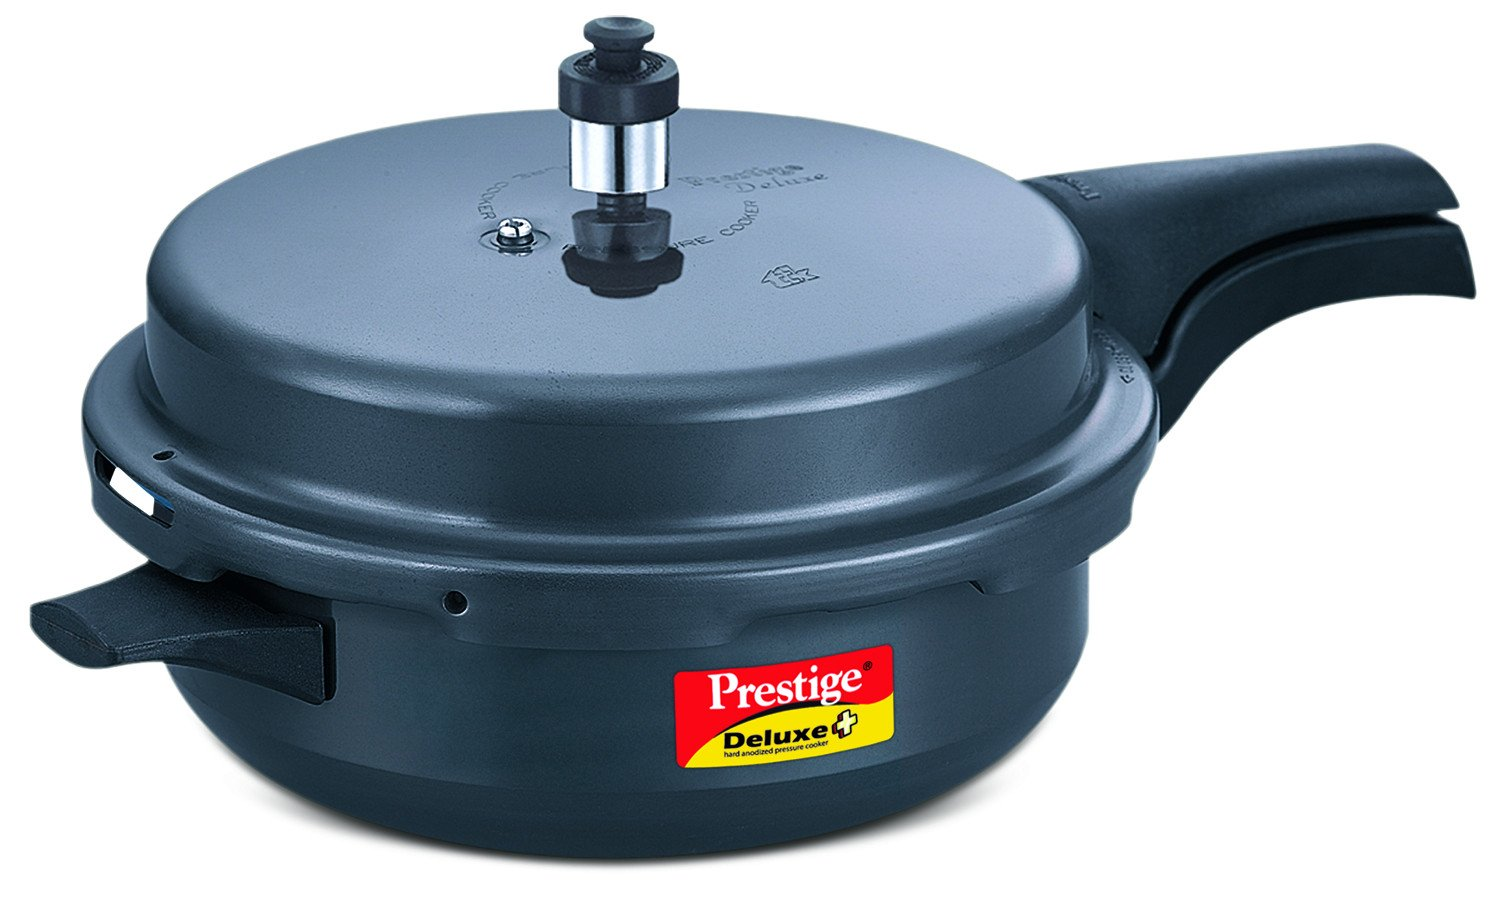 TTK Prestige 20354 Deluxe Plus Pressure Cooker Senior Dark Grey